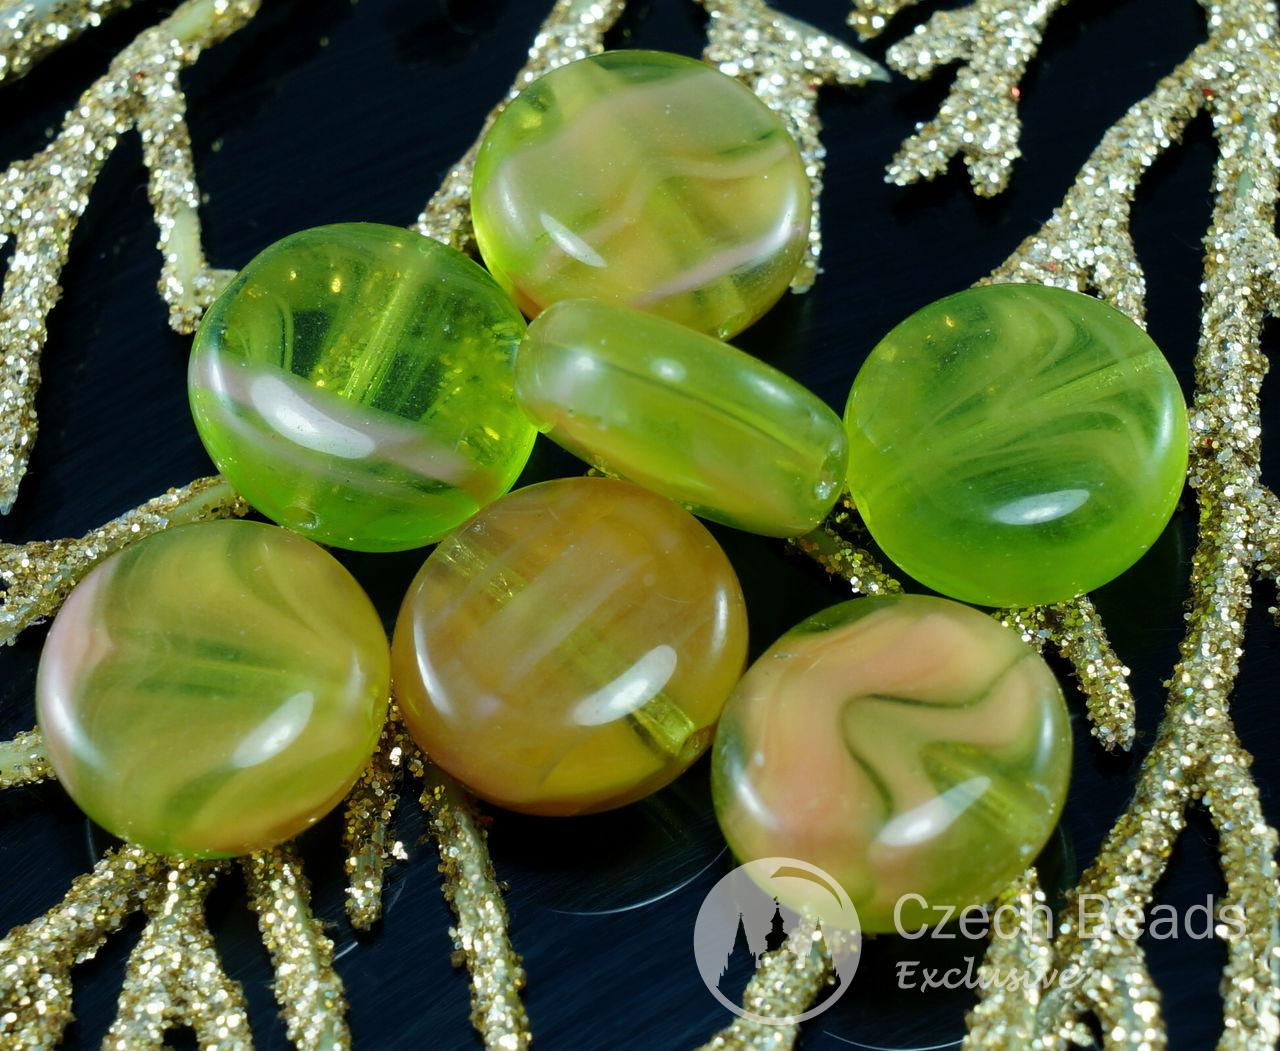 Picasso Green Crystal Czech Glass Flat Round Coin Beads Tablet Shape 12mm 16pcs for $2.44 from Czech Beads Exclusive